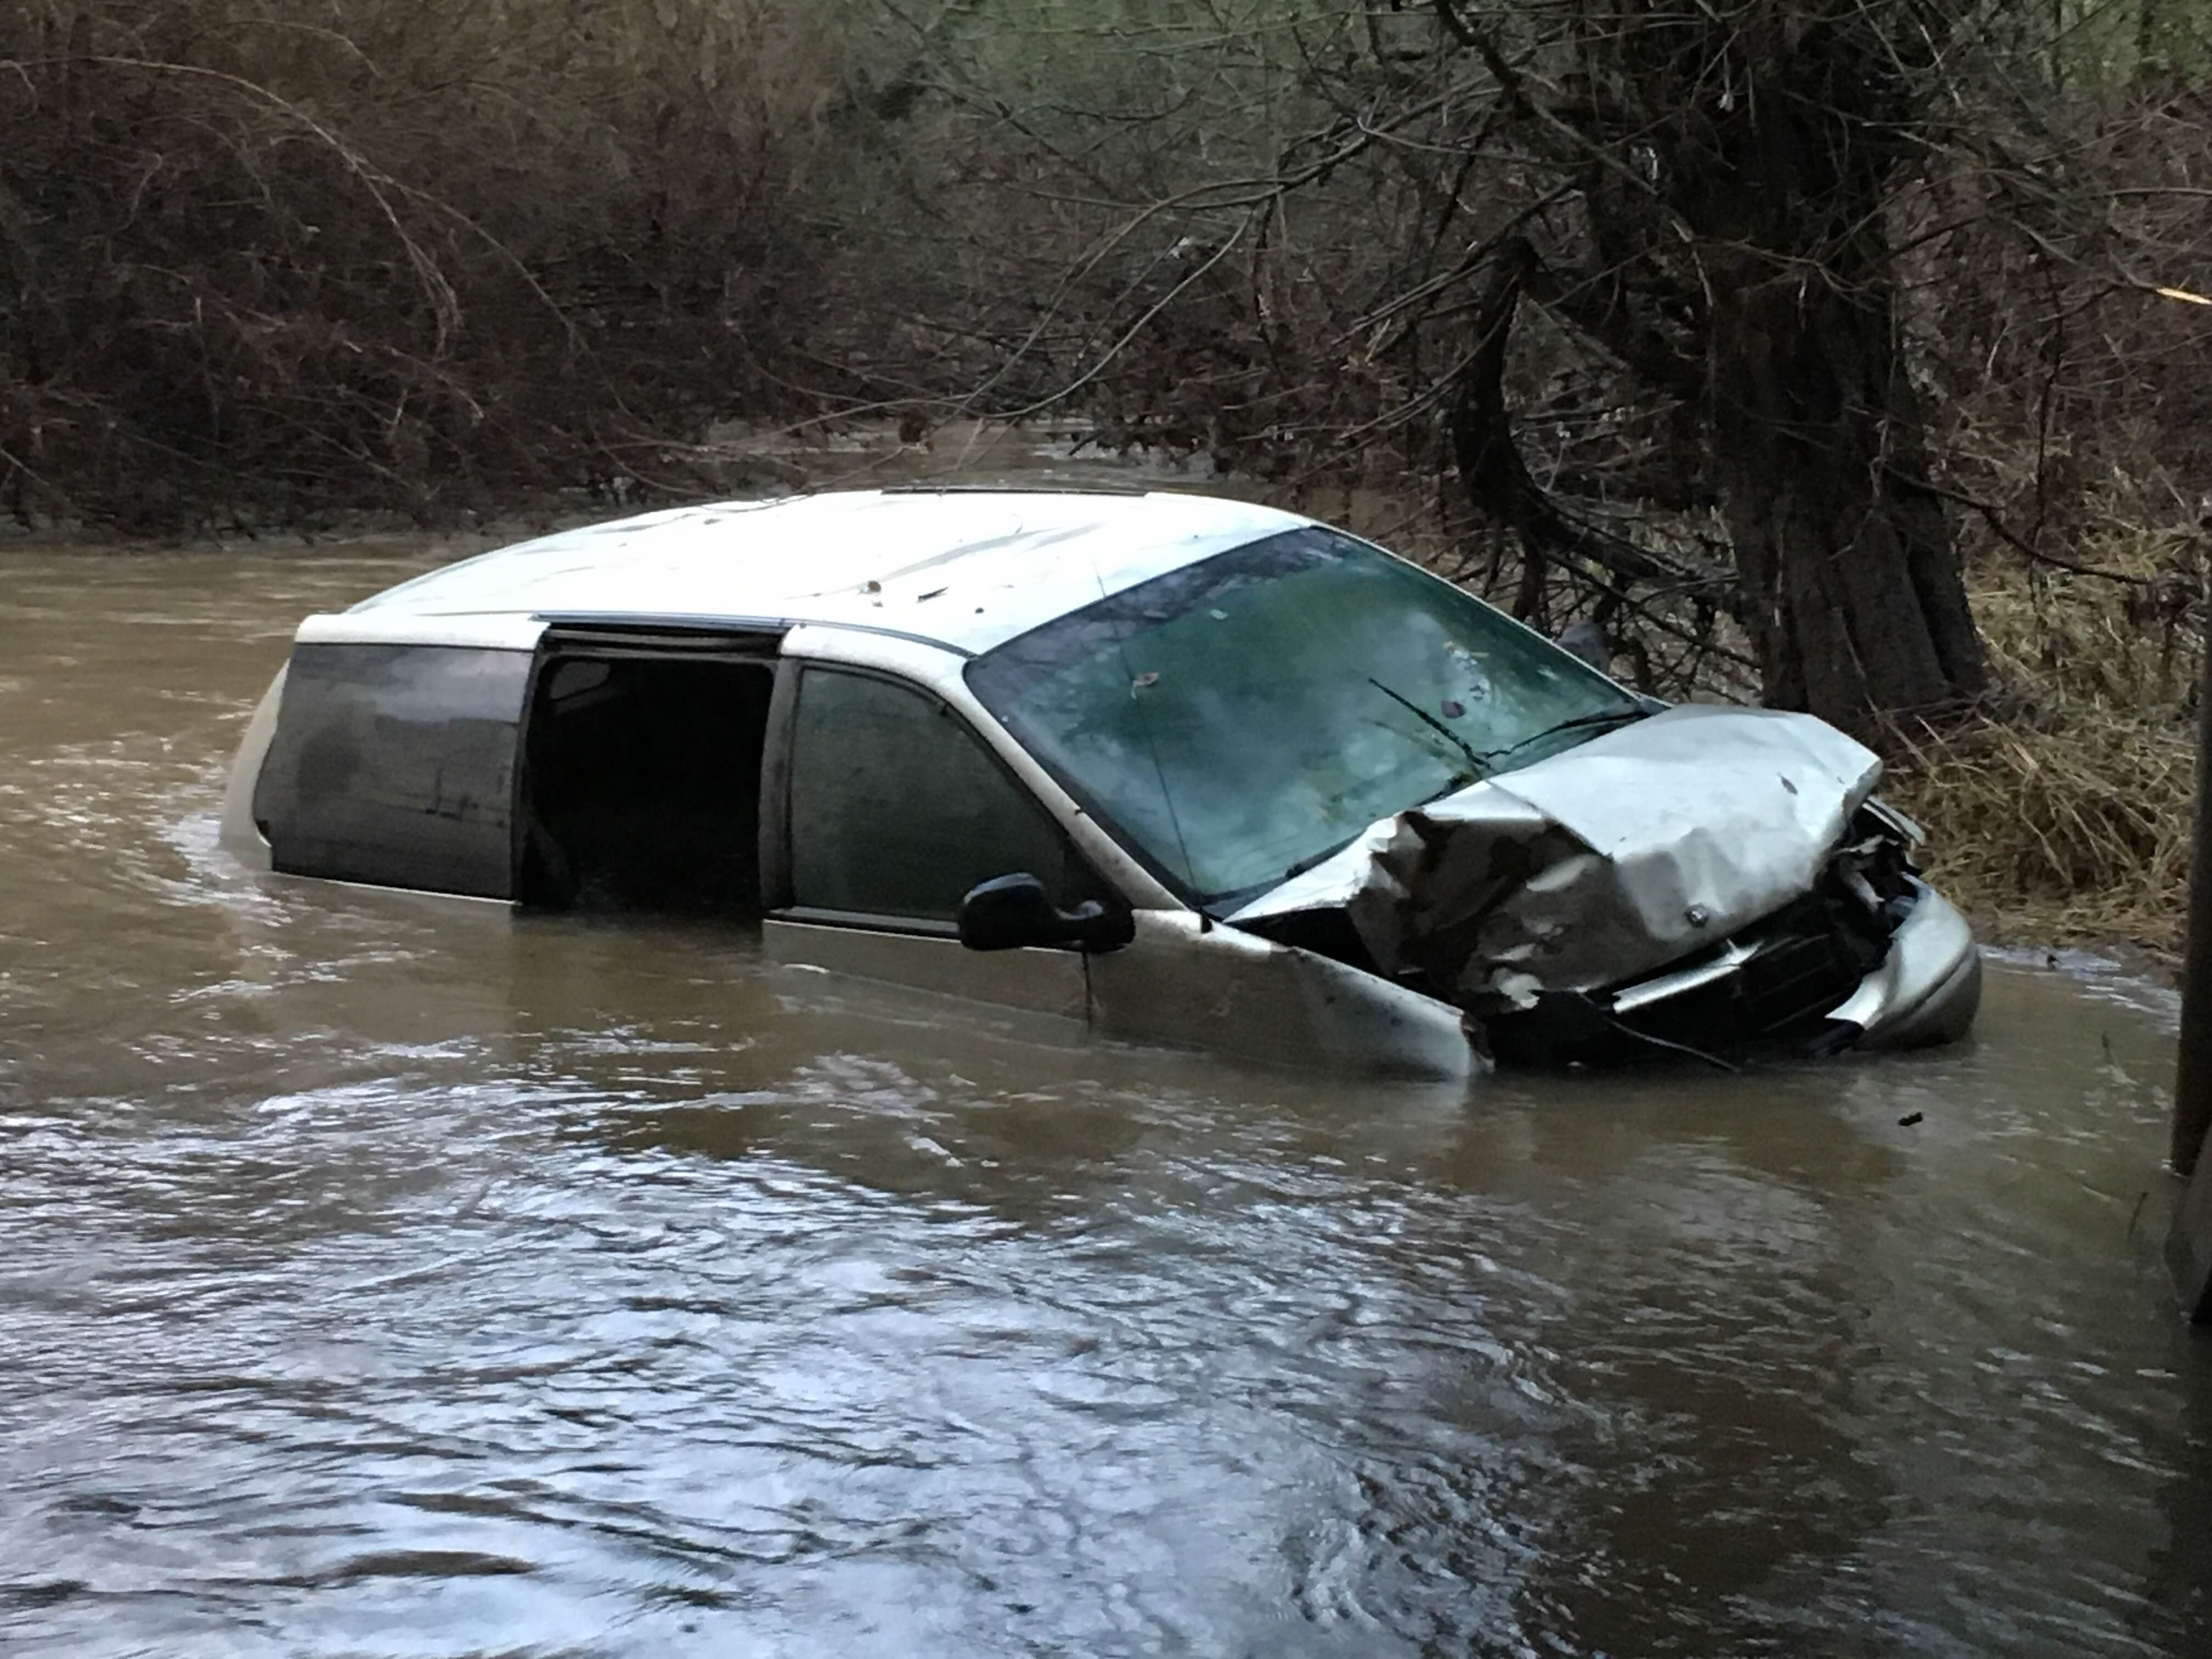 Jeannette Wilder's van still sitting in Zollner Creek.